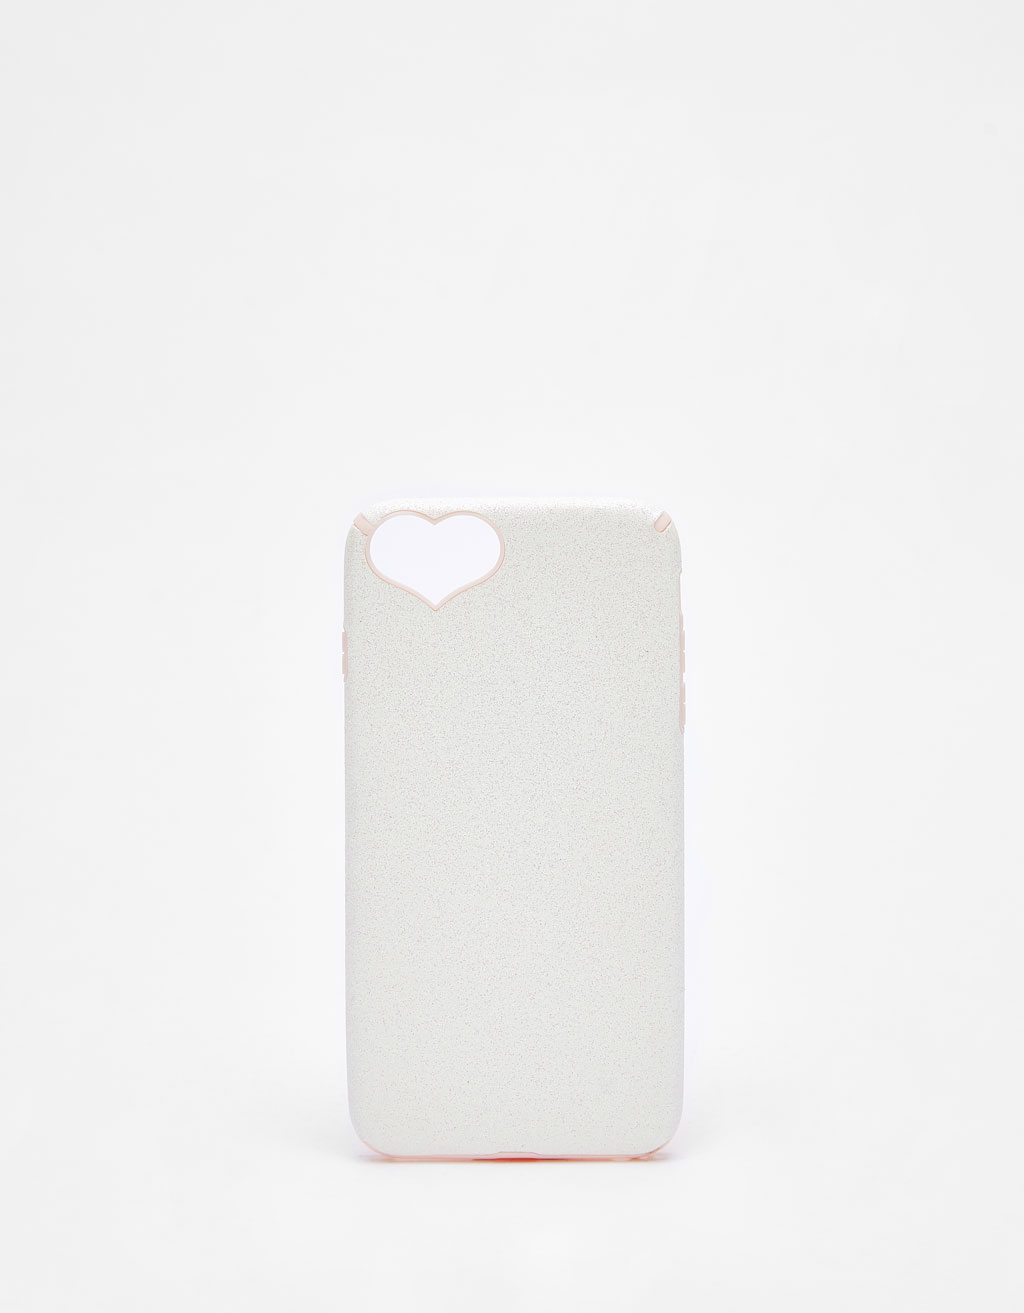 Cover iPhone 6 plus/ 7plus/ 8 plus brillante cuore